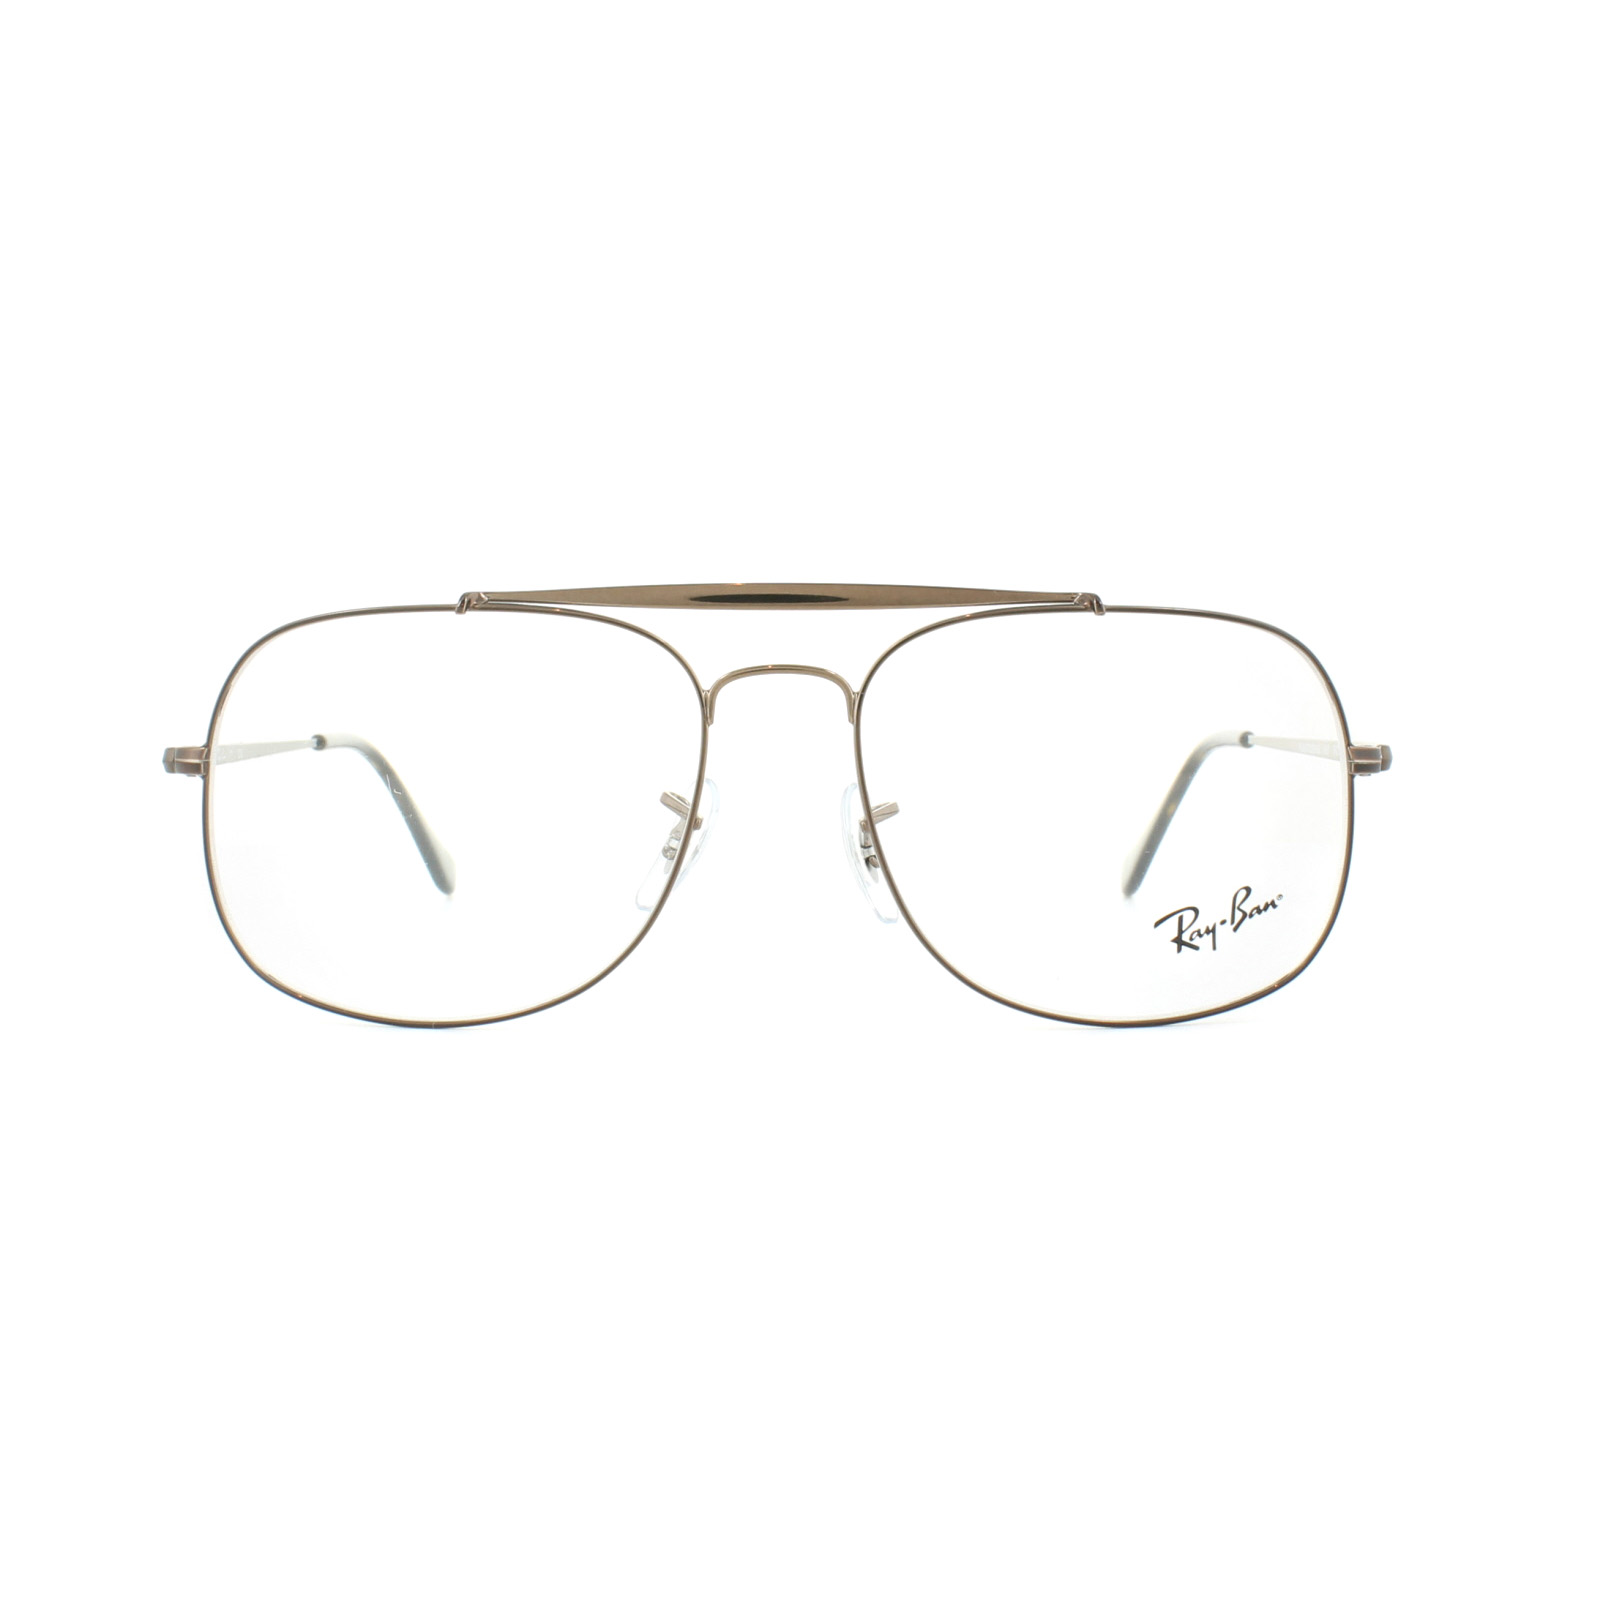 c44d4075cfe Ray-Ban Glasses Frames 6389 The General 2531 Light Brown 57mm Mens ...